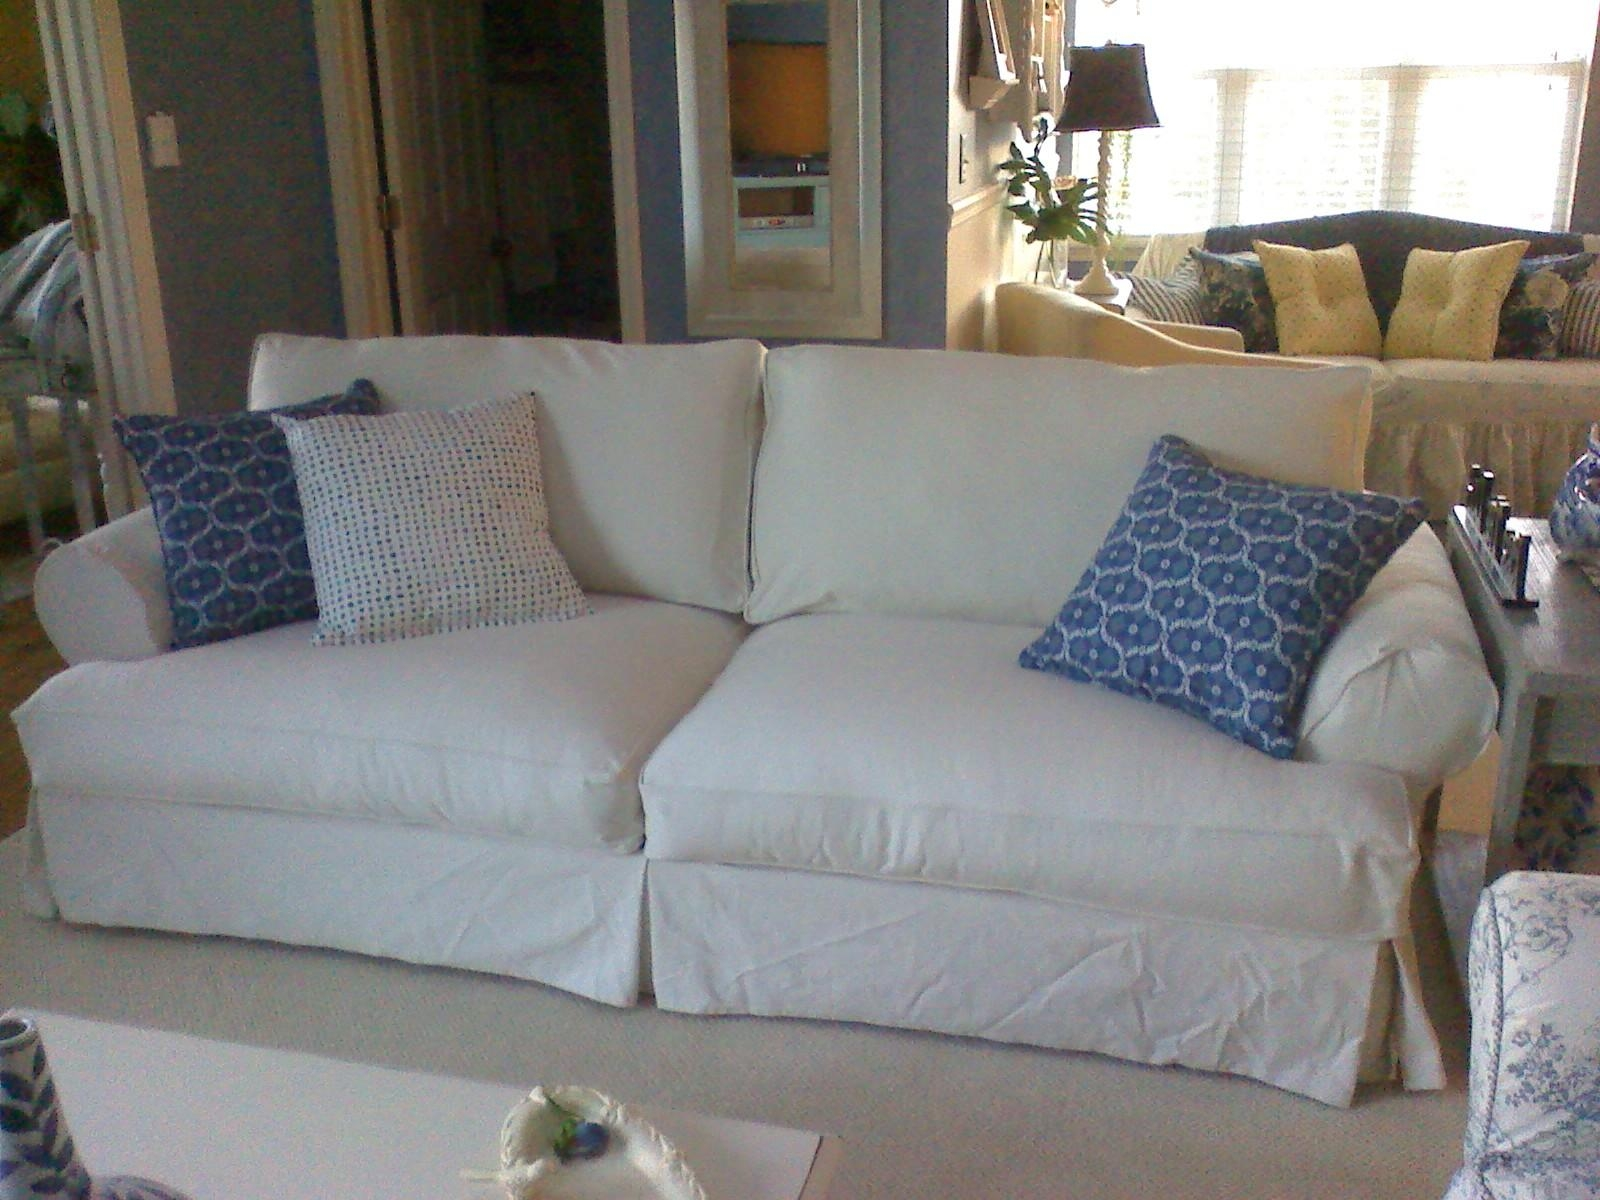 Replacement Slipcover Outlet Replacement Slipcovers For Famous Inside Large Sofa Slipcovers (View 7 of 23)